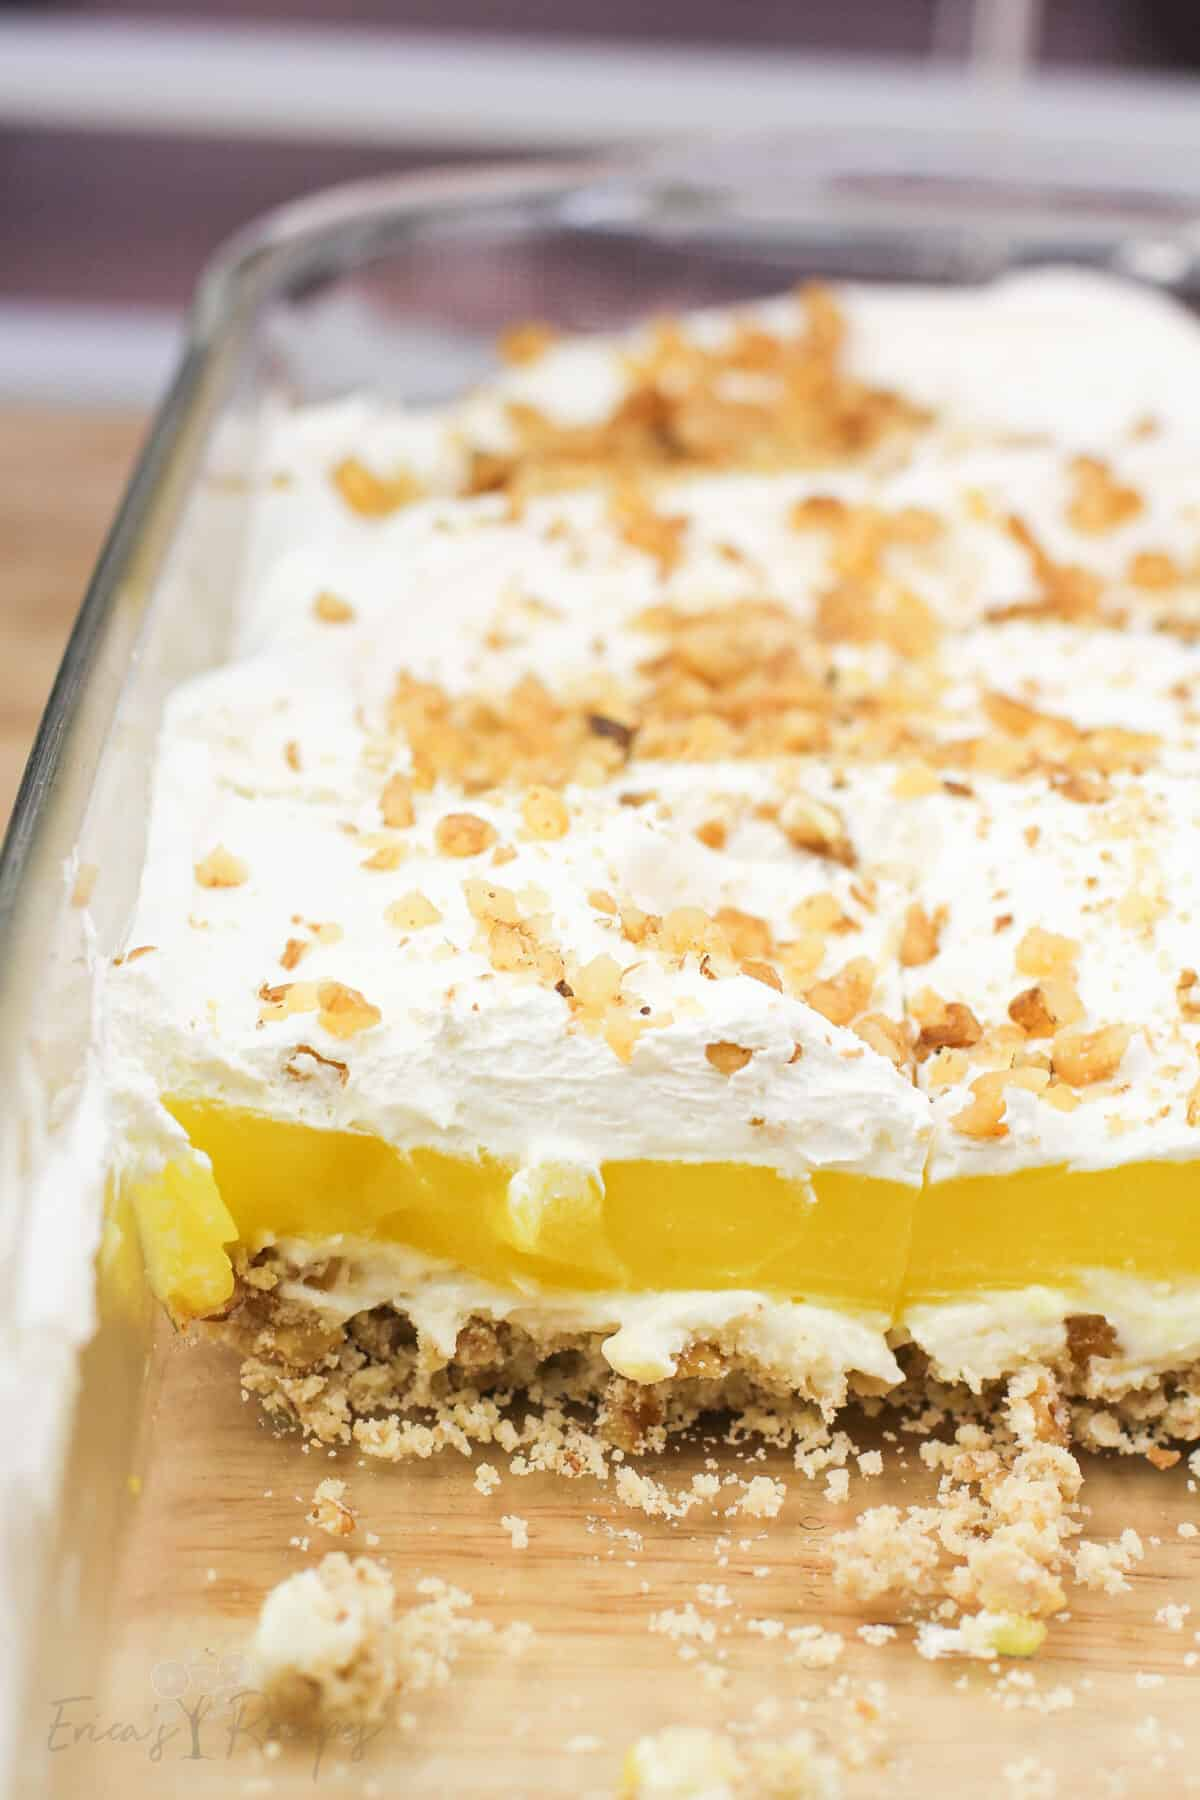 lemon delight in Pyrex bake dish, cross section to show layers